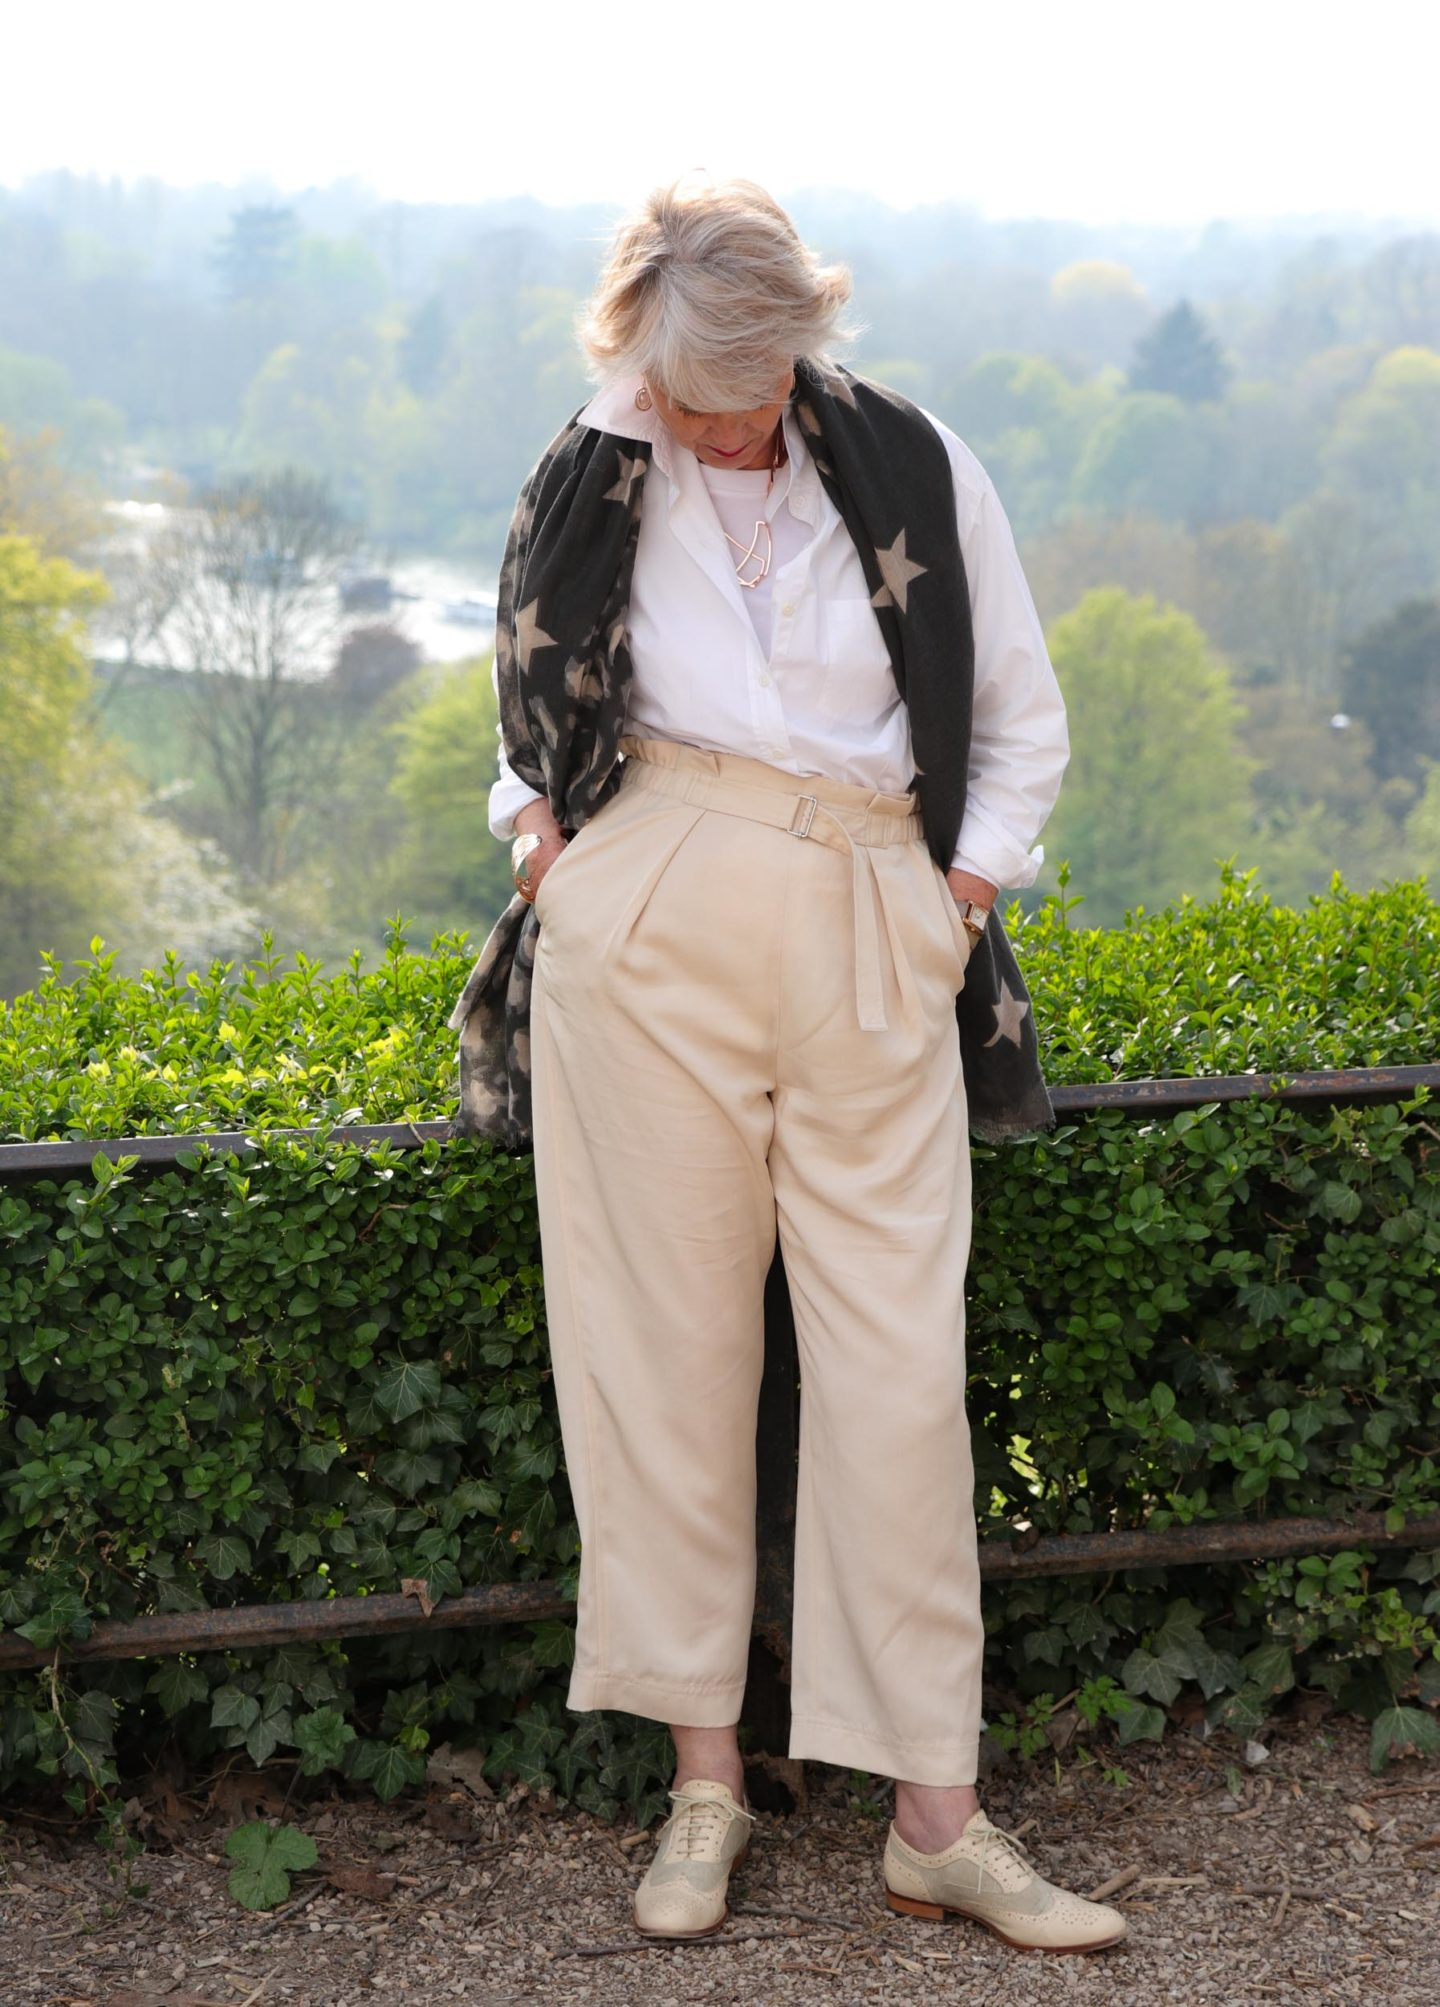 Beige trousers, white shirt star scarf